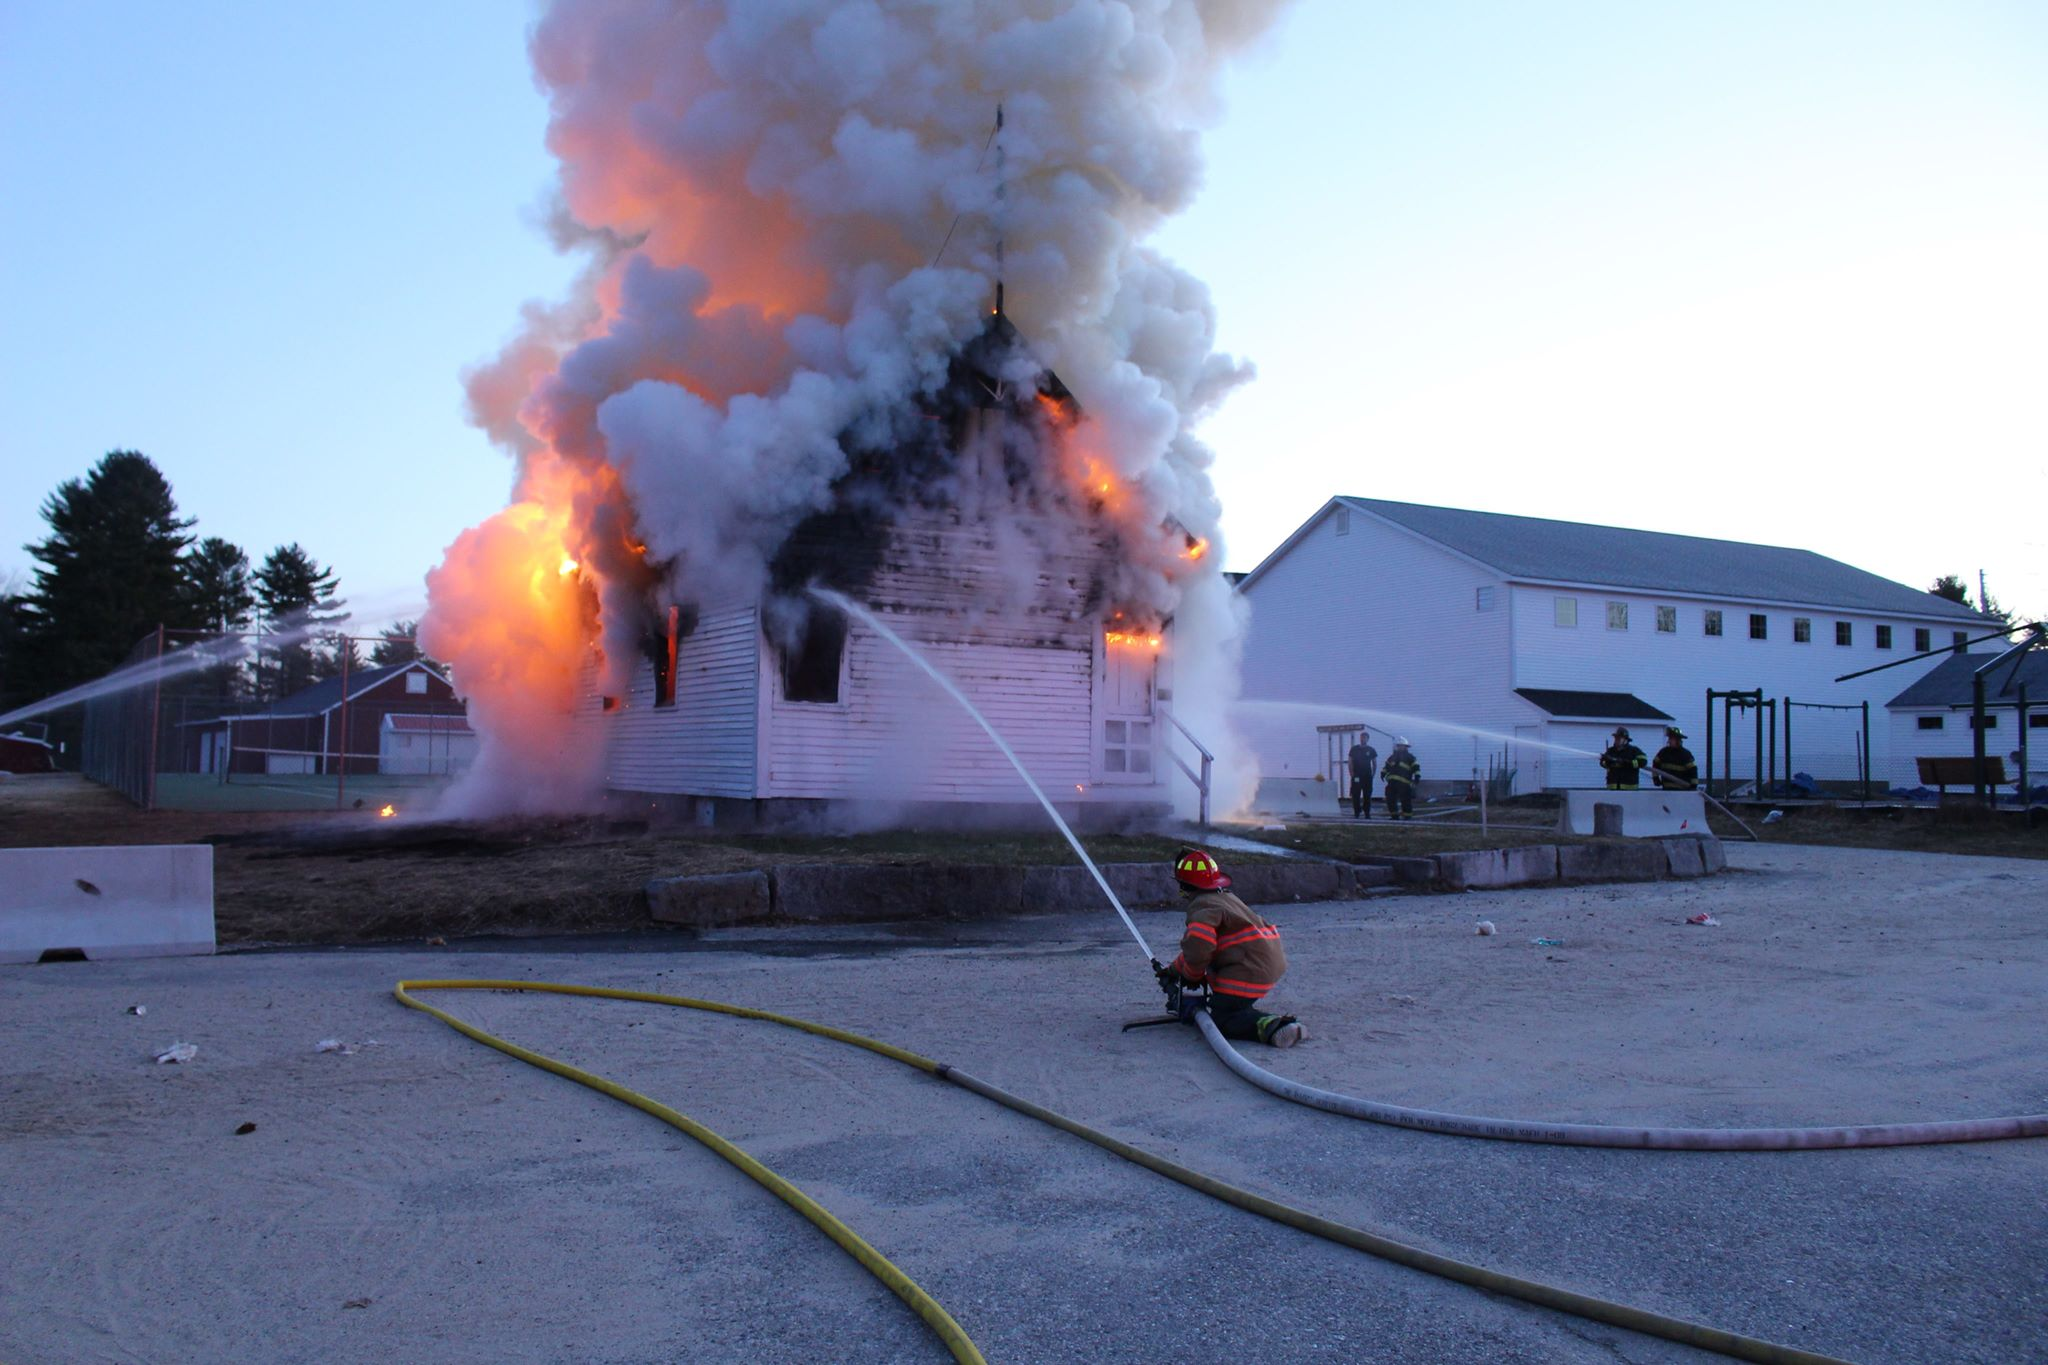 Junior firefighter Jordan Magiera mans a fire hose atThe Old School House in Cascom which heavily damaged in an early morning fire Sunday. (Lisa Magiera)